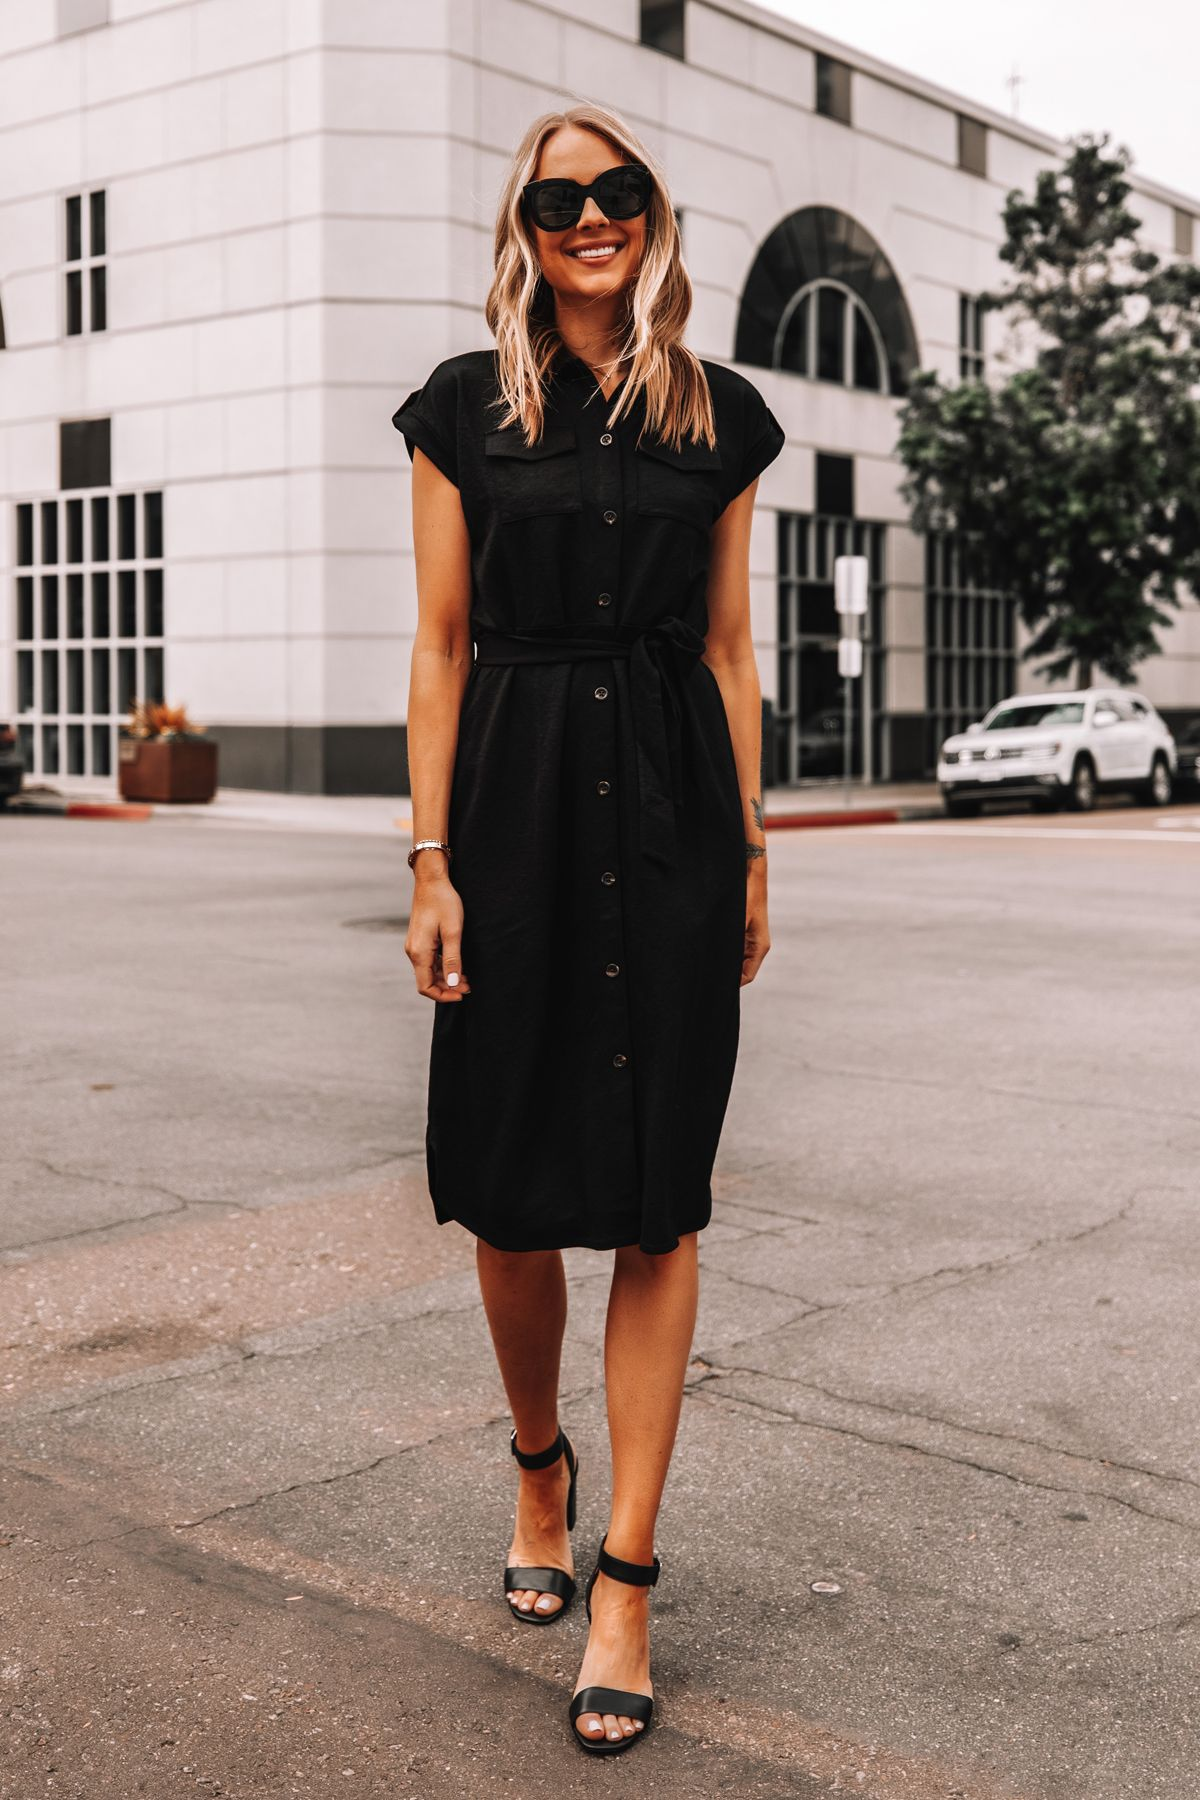 Fashion Jackson Wearing Ann Taylor Black Belted Shirt Dress Black Sandals Workwear Outfit 2 Summer Work Dresses Summer Dress Outfits Casual Dress Outfits [ 1800 x 1200 Pixel ]